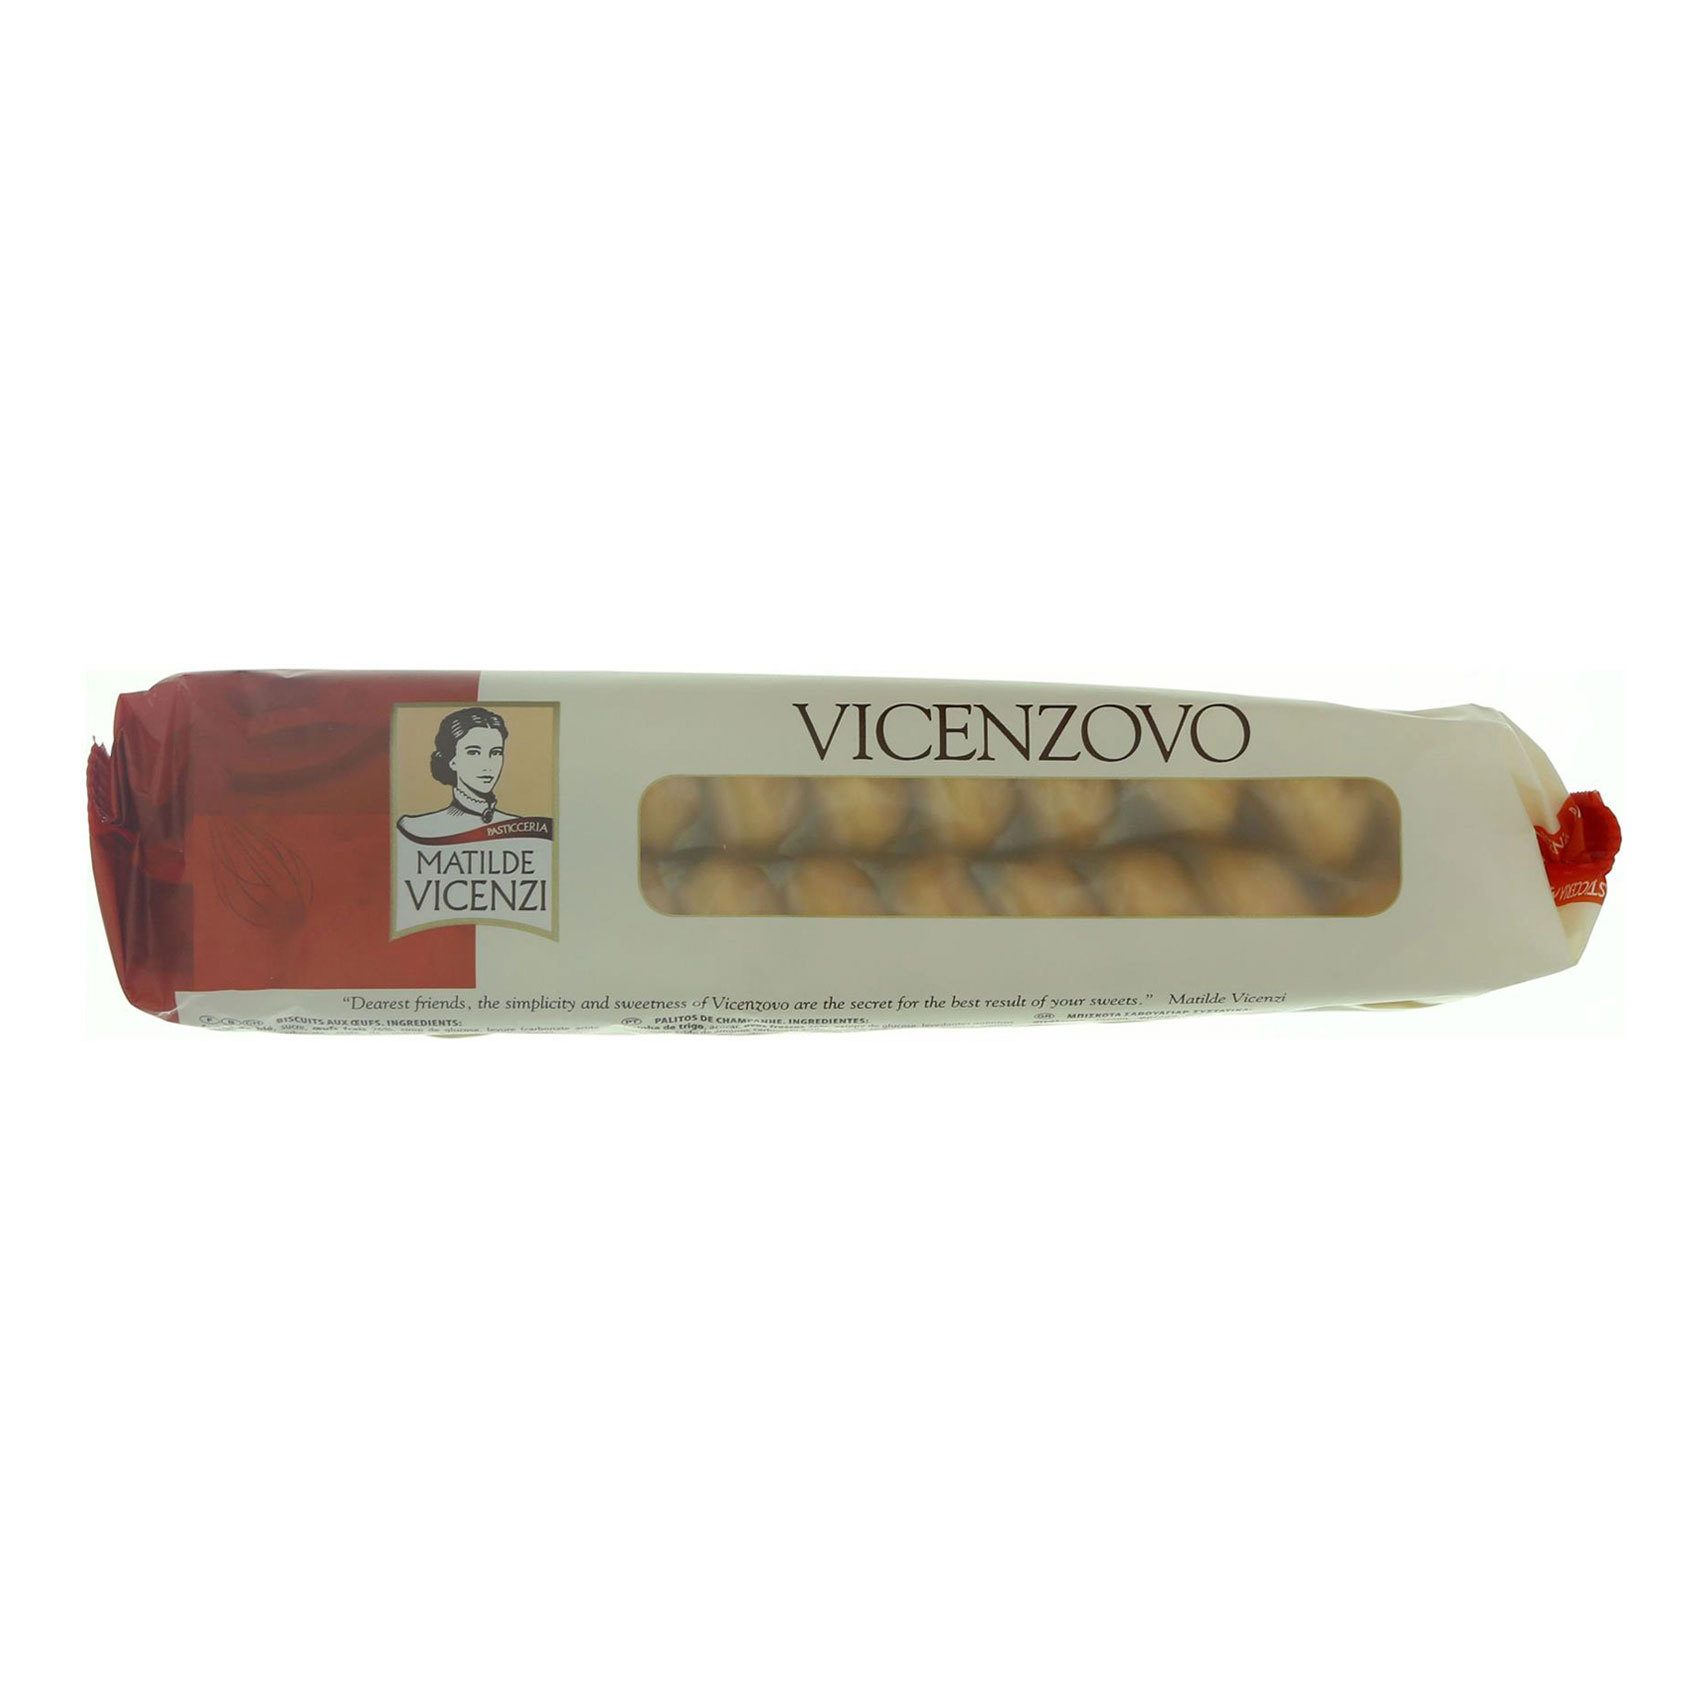 VICENZI LADY FINGERS 200GR